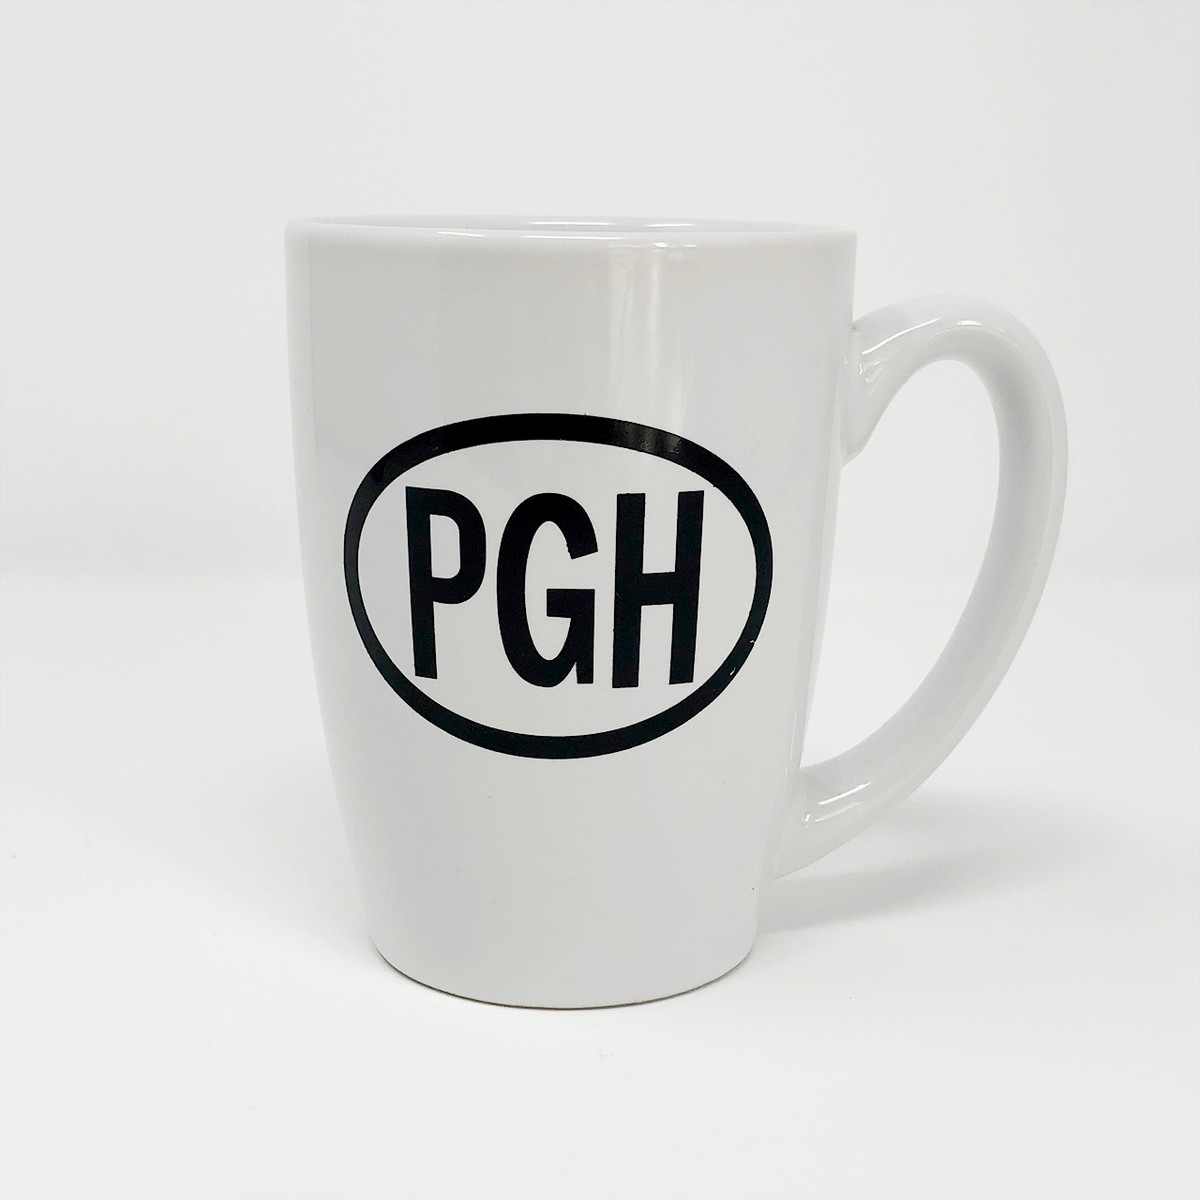 PGH Tall Coffee Mug